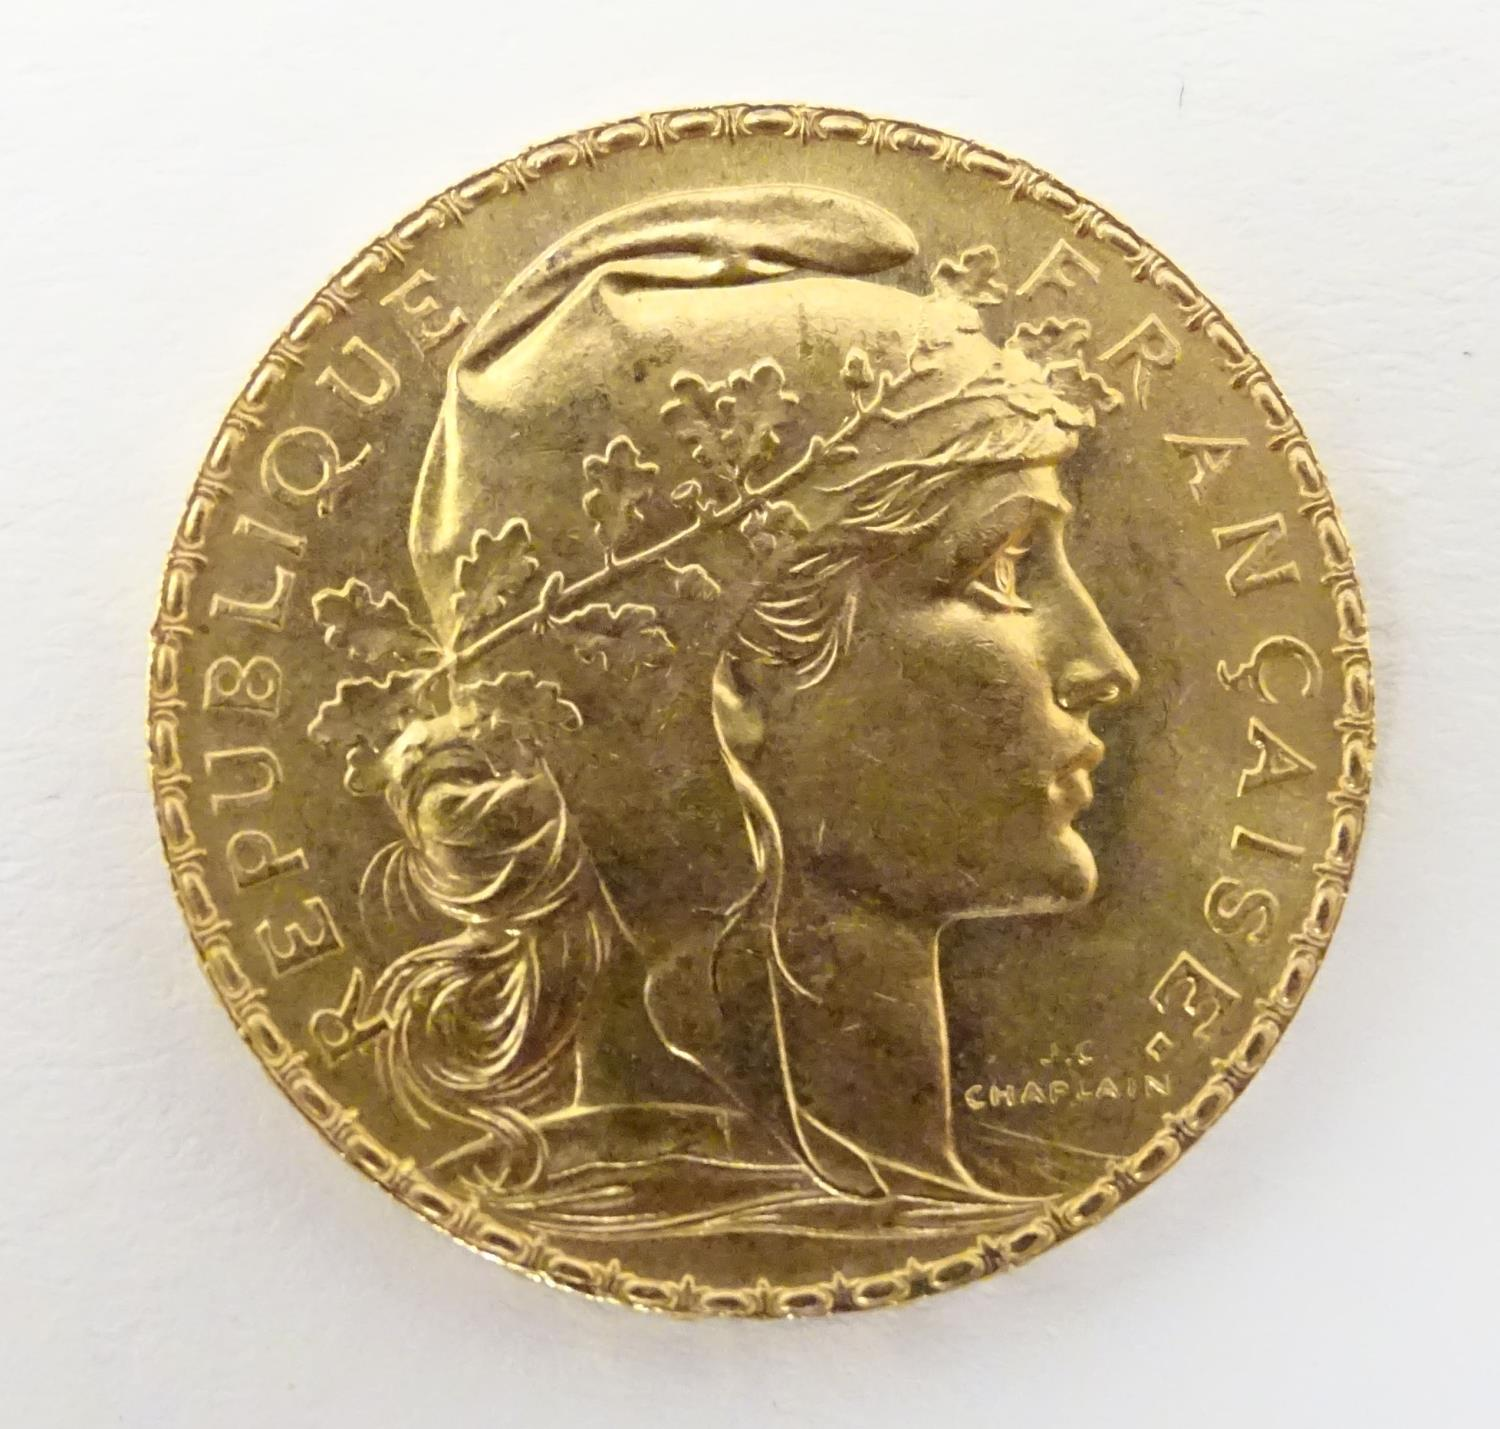 1911 20 franc french gold coin